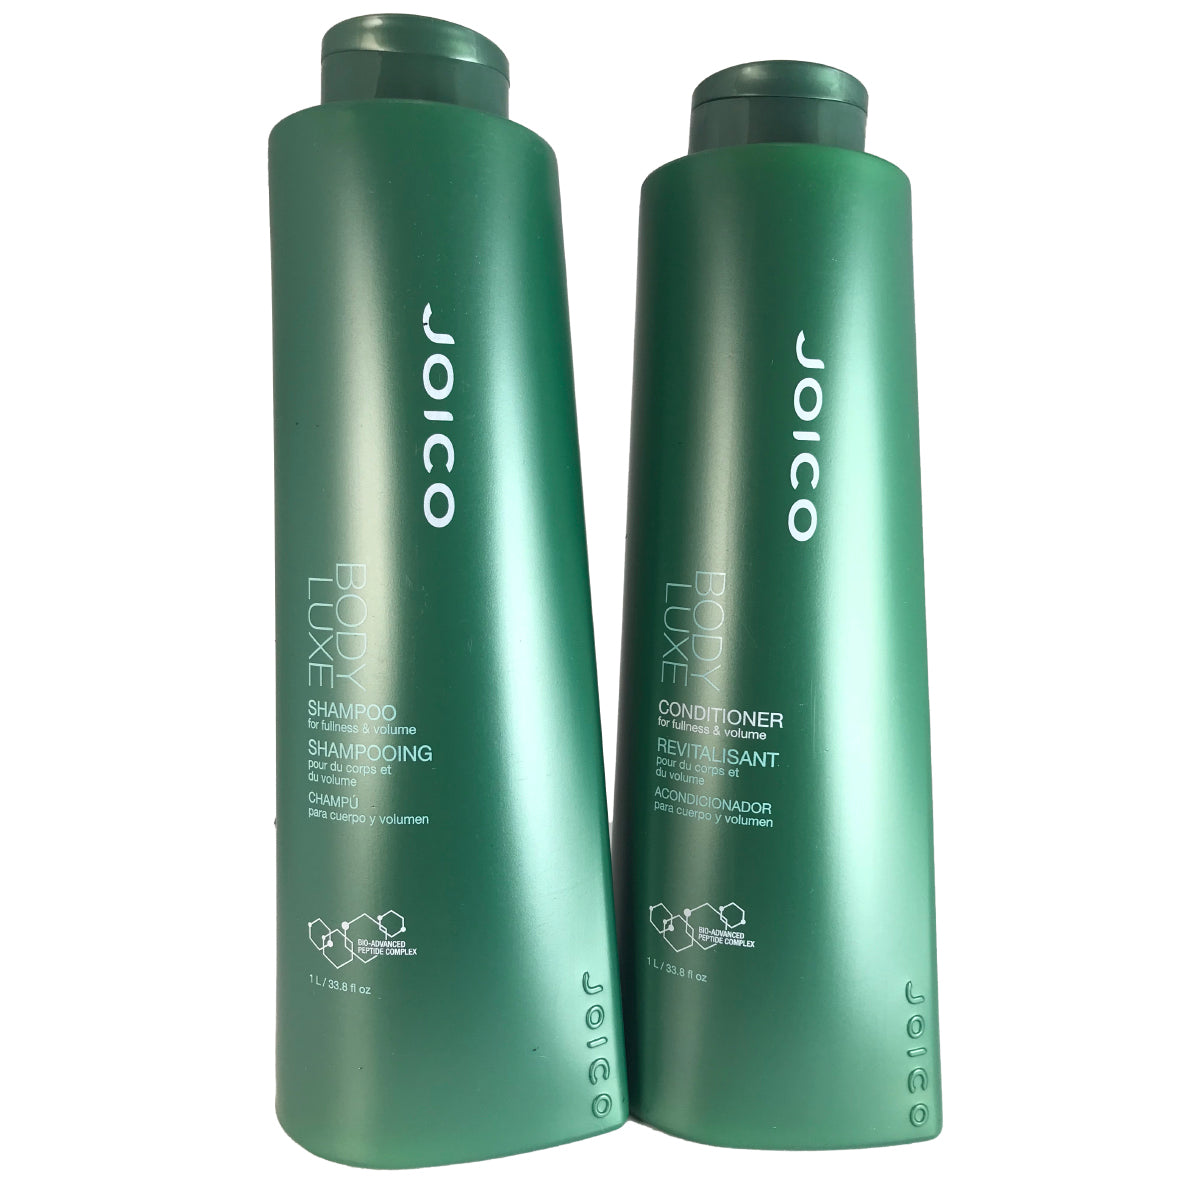 Joico Body Luxe Hair Shampoo and Conditoner Duo 33.8 oz Each